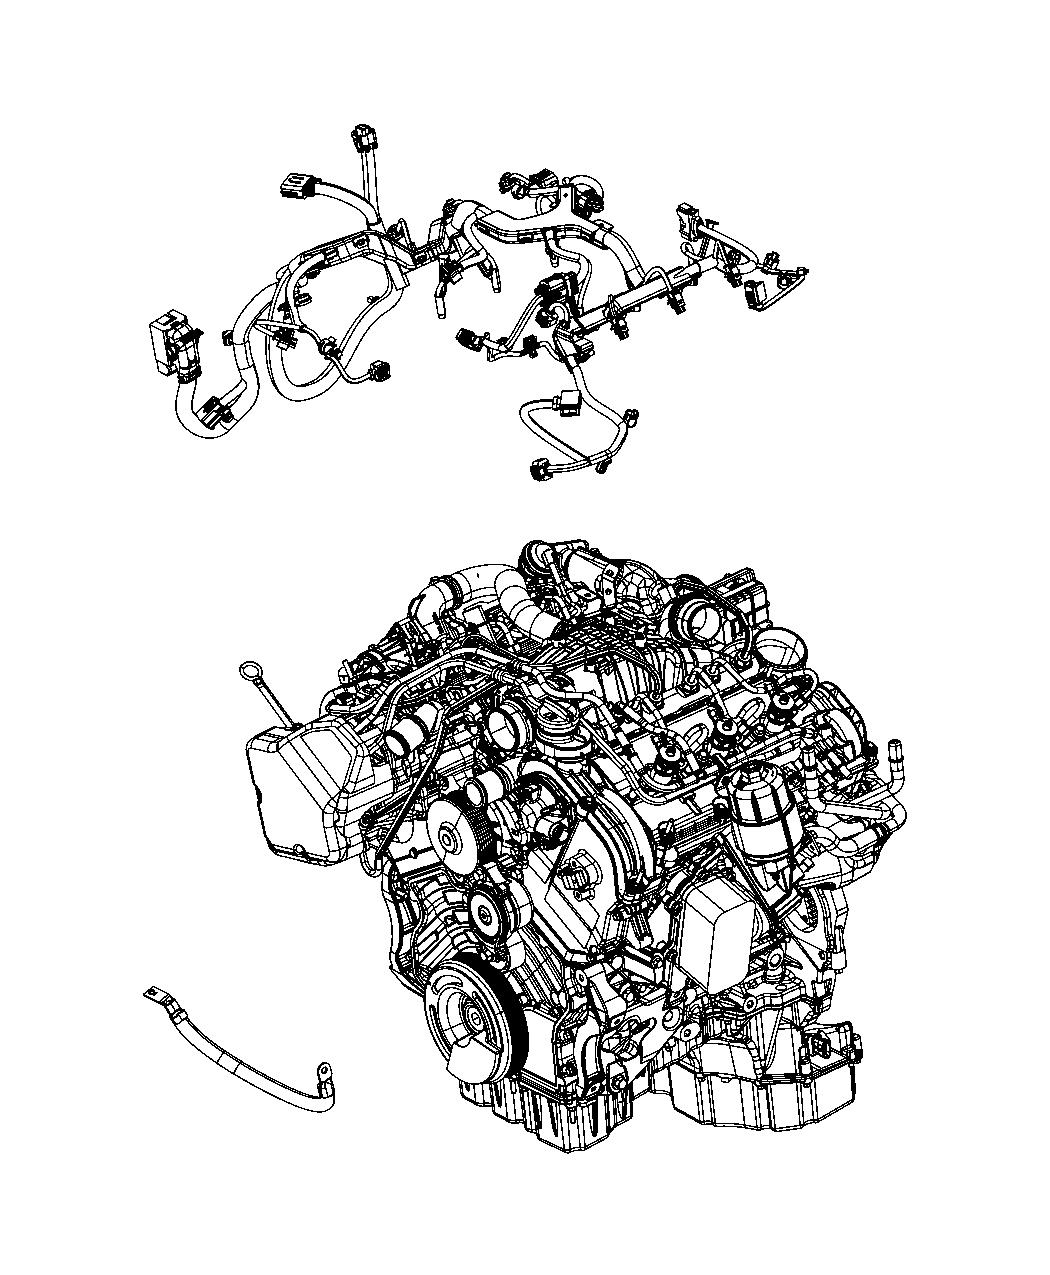 2014 Jeep Grand Cherokee Wiring  Injector   50 State